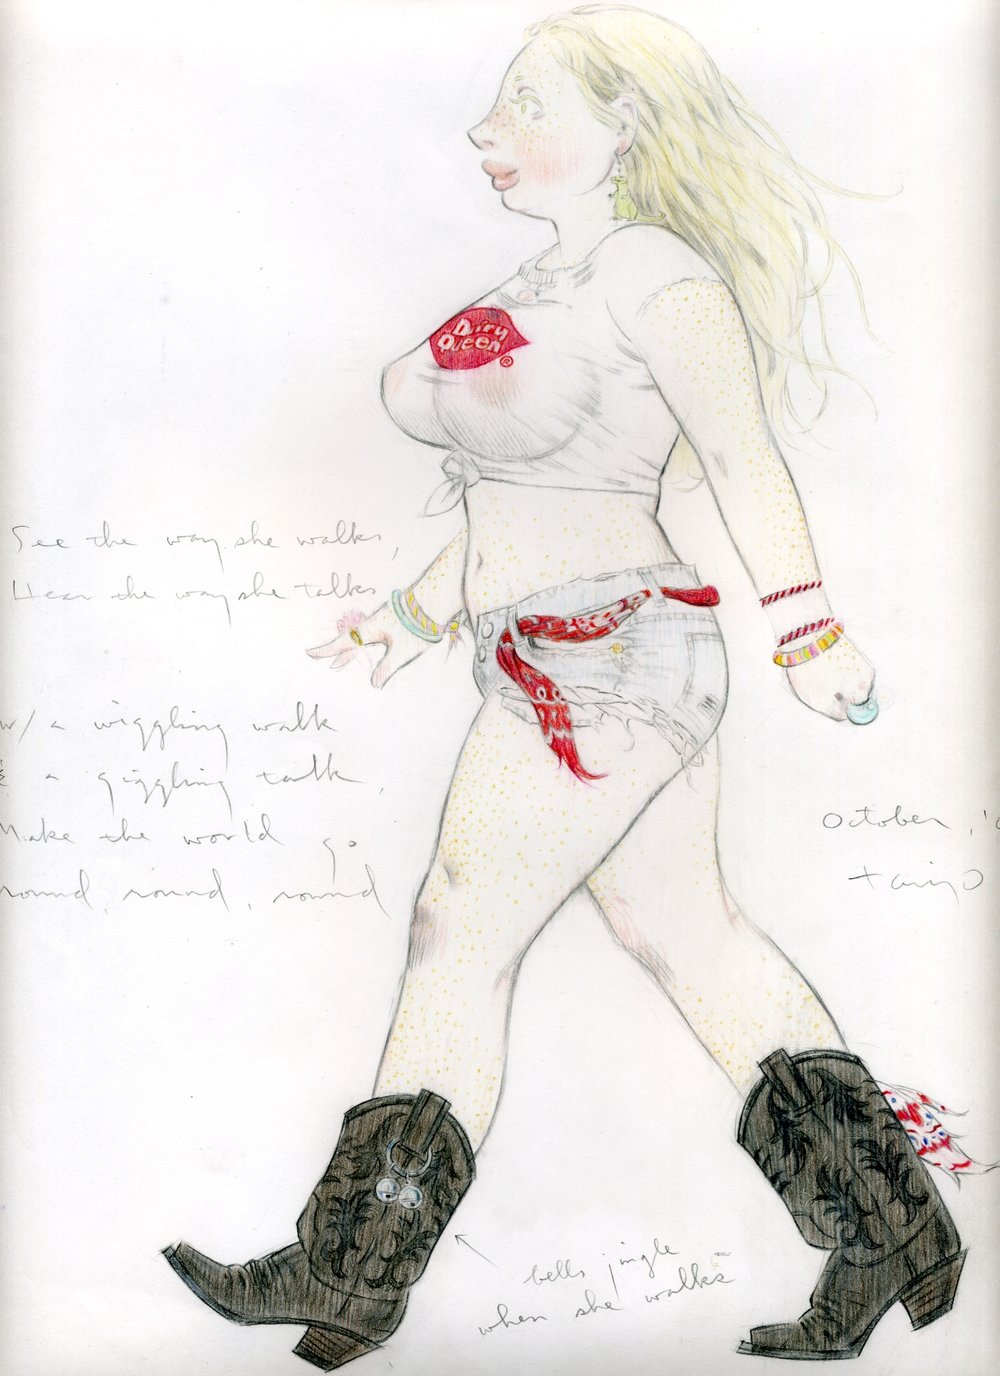 See the Way She Walks, 2005, pencil on paper, 13 x 9 inches, courtesy of Alli Good http://alligoodart.bigcartel.com